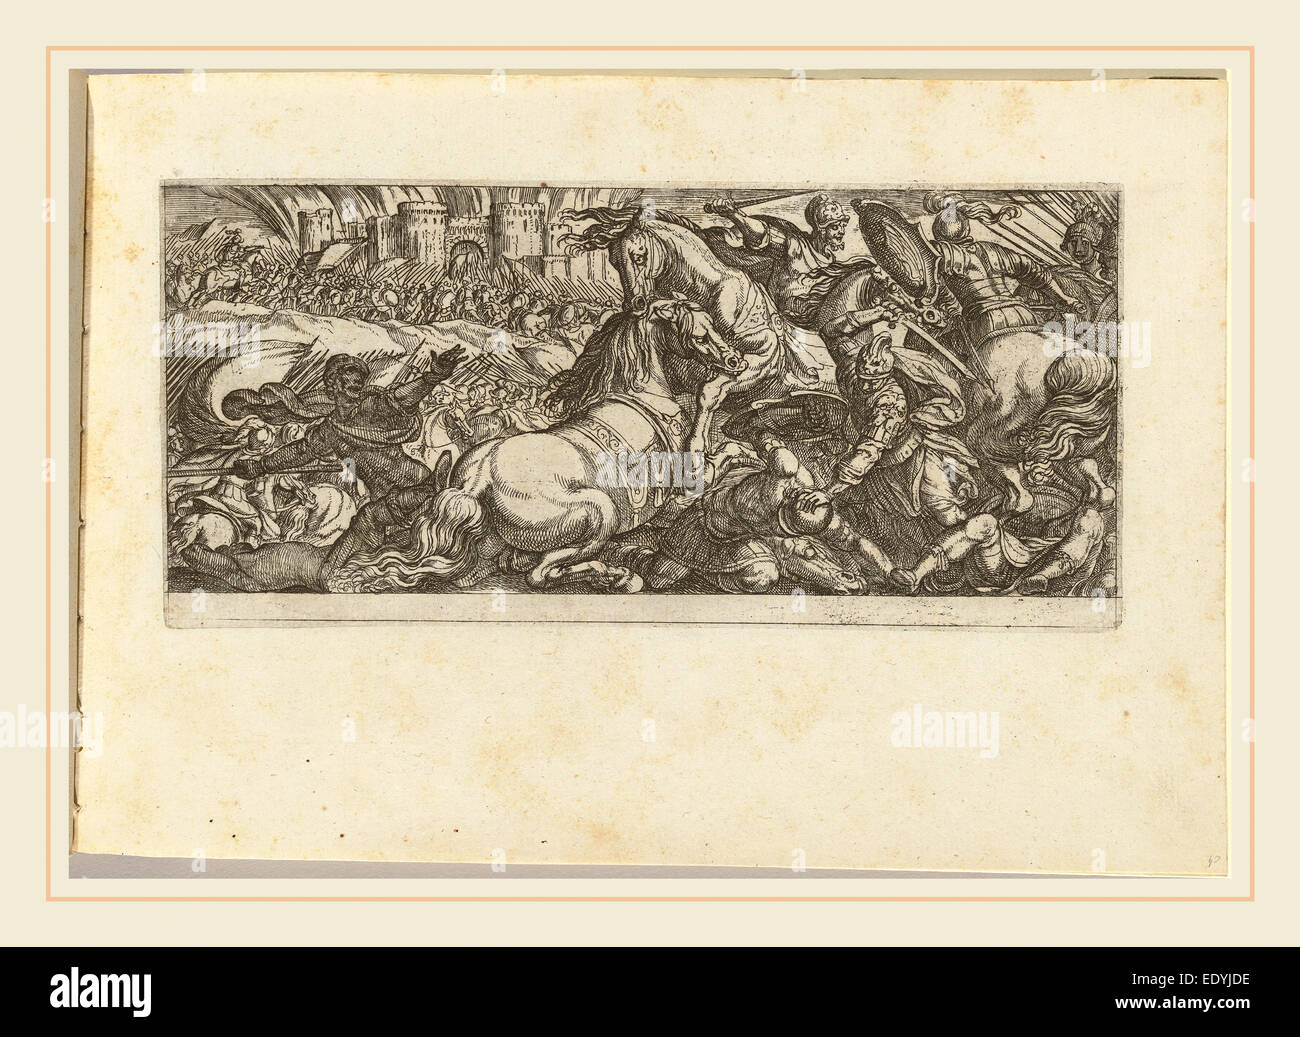 Antonio Tempesta, Italian (1555-1630), Battle Scene with Two Horses Attacking Each Other, etching - Stock Image